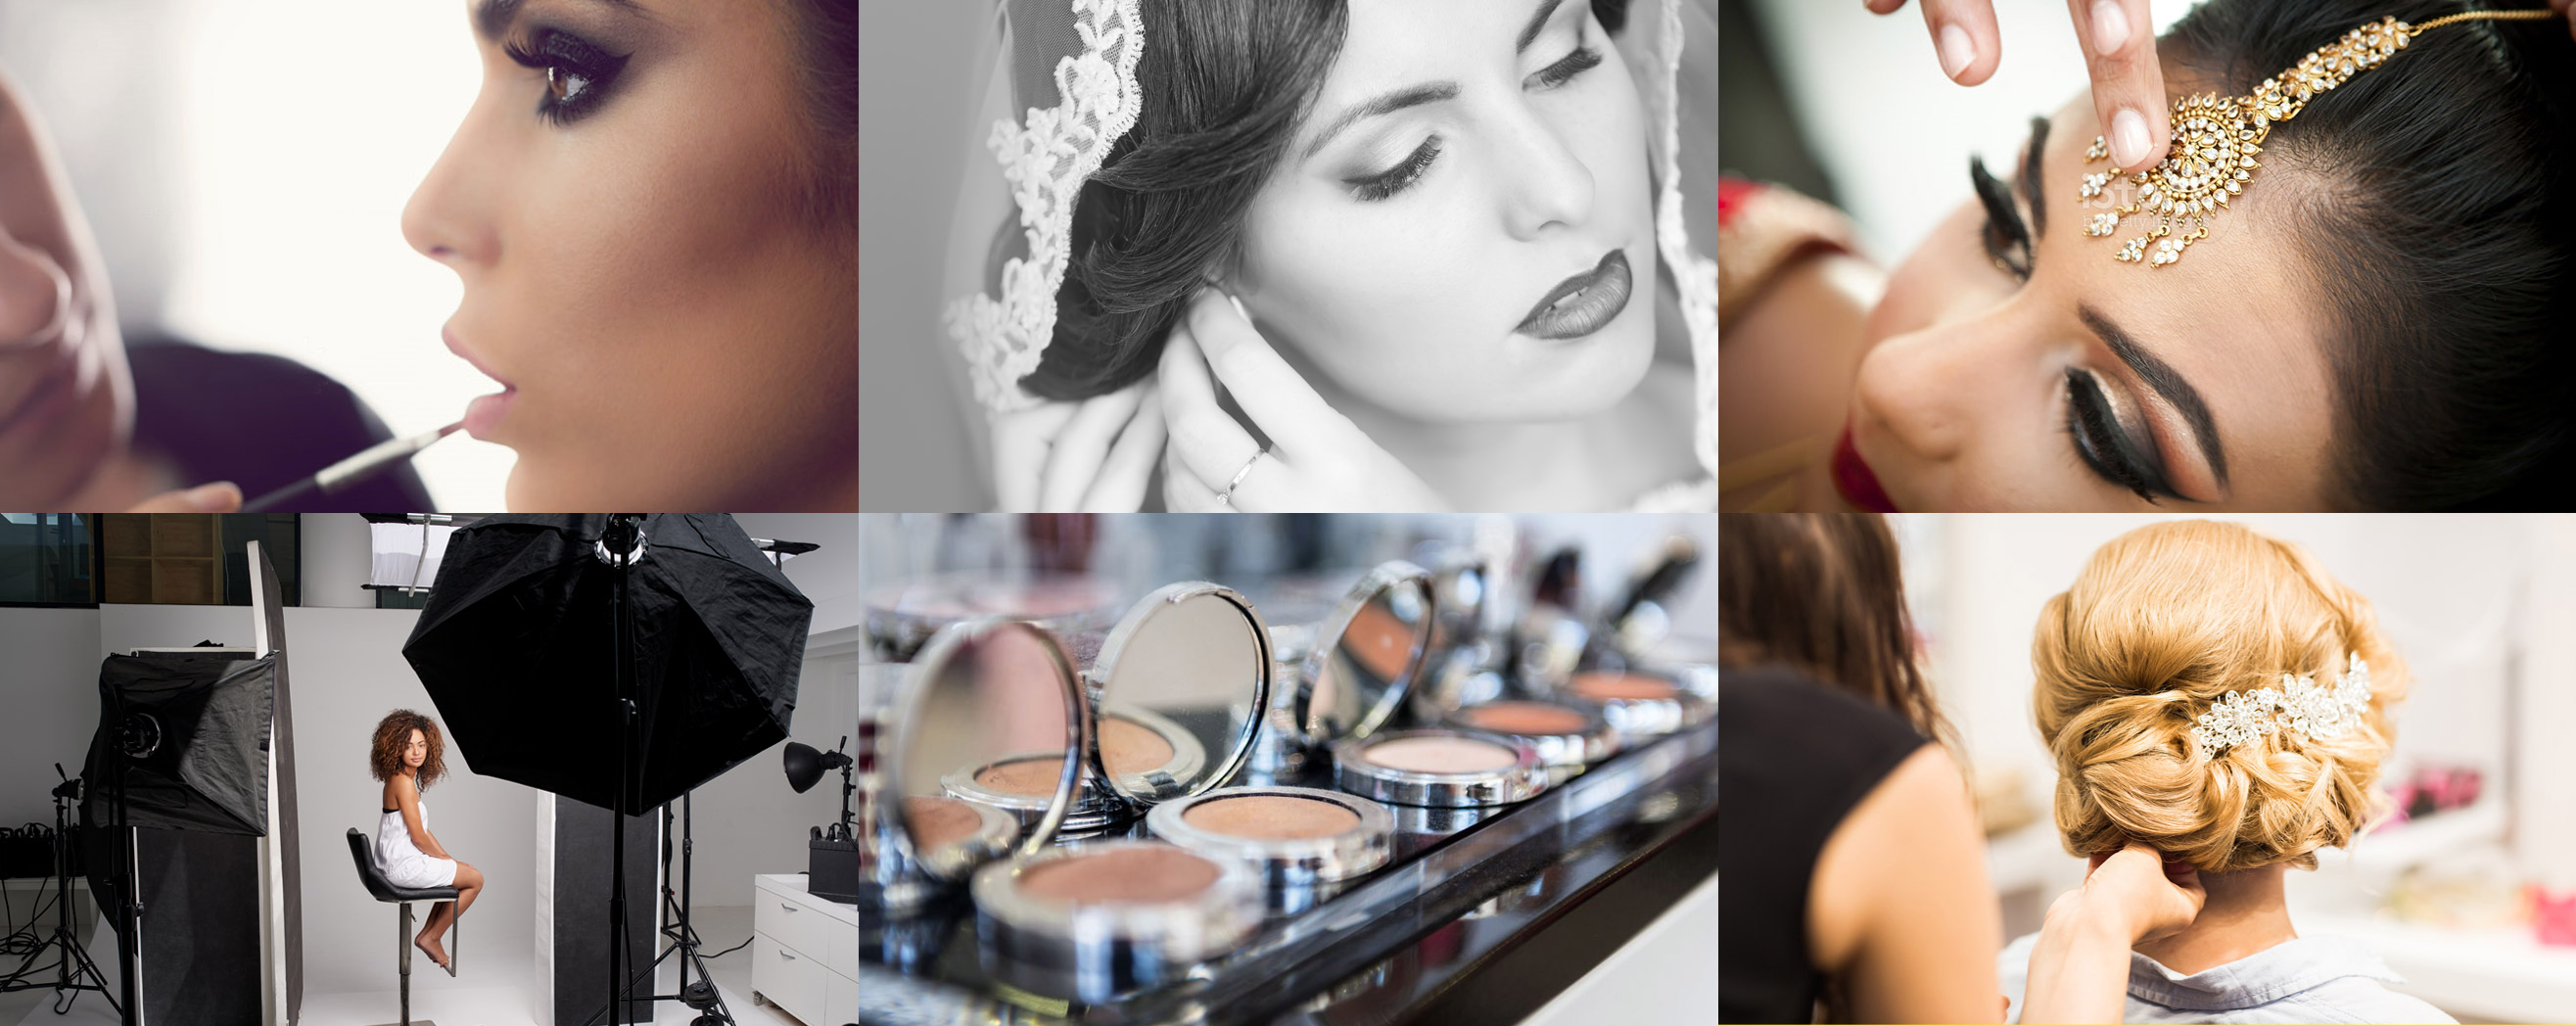 New Jersey Makeup Artists | New Jersey Hair Artists | MMUAV